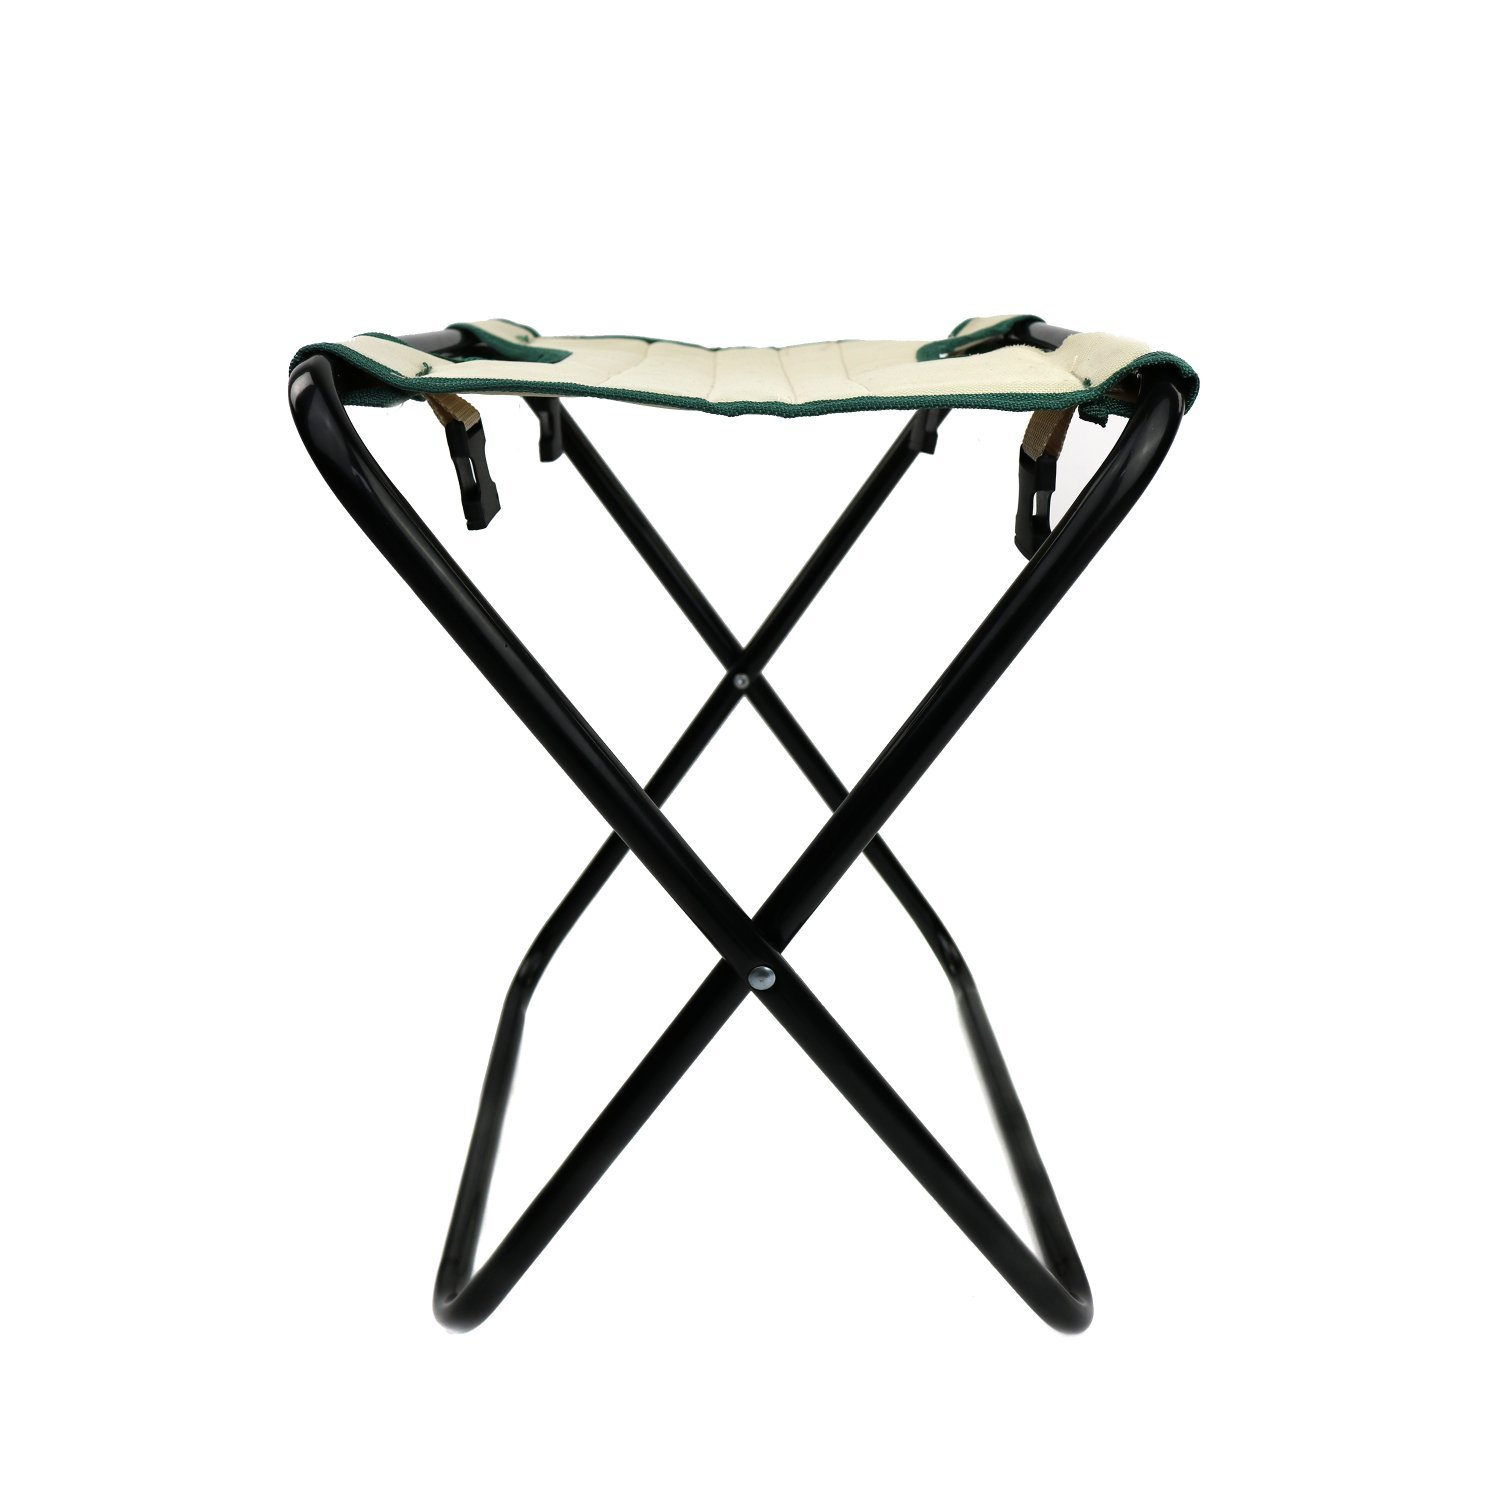 ... Folding Gardeners Stool with 5pc Tools and Storage Bag Gardening  sc 1 st  Oypla & Folding Gardeners Stool with 5pc Tools and Storage Bag Gardening ... islam-shia.org